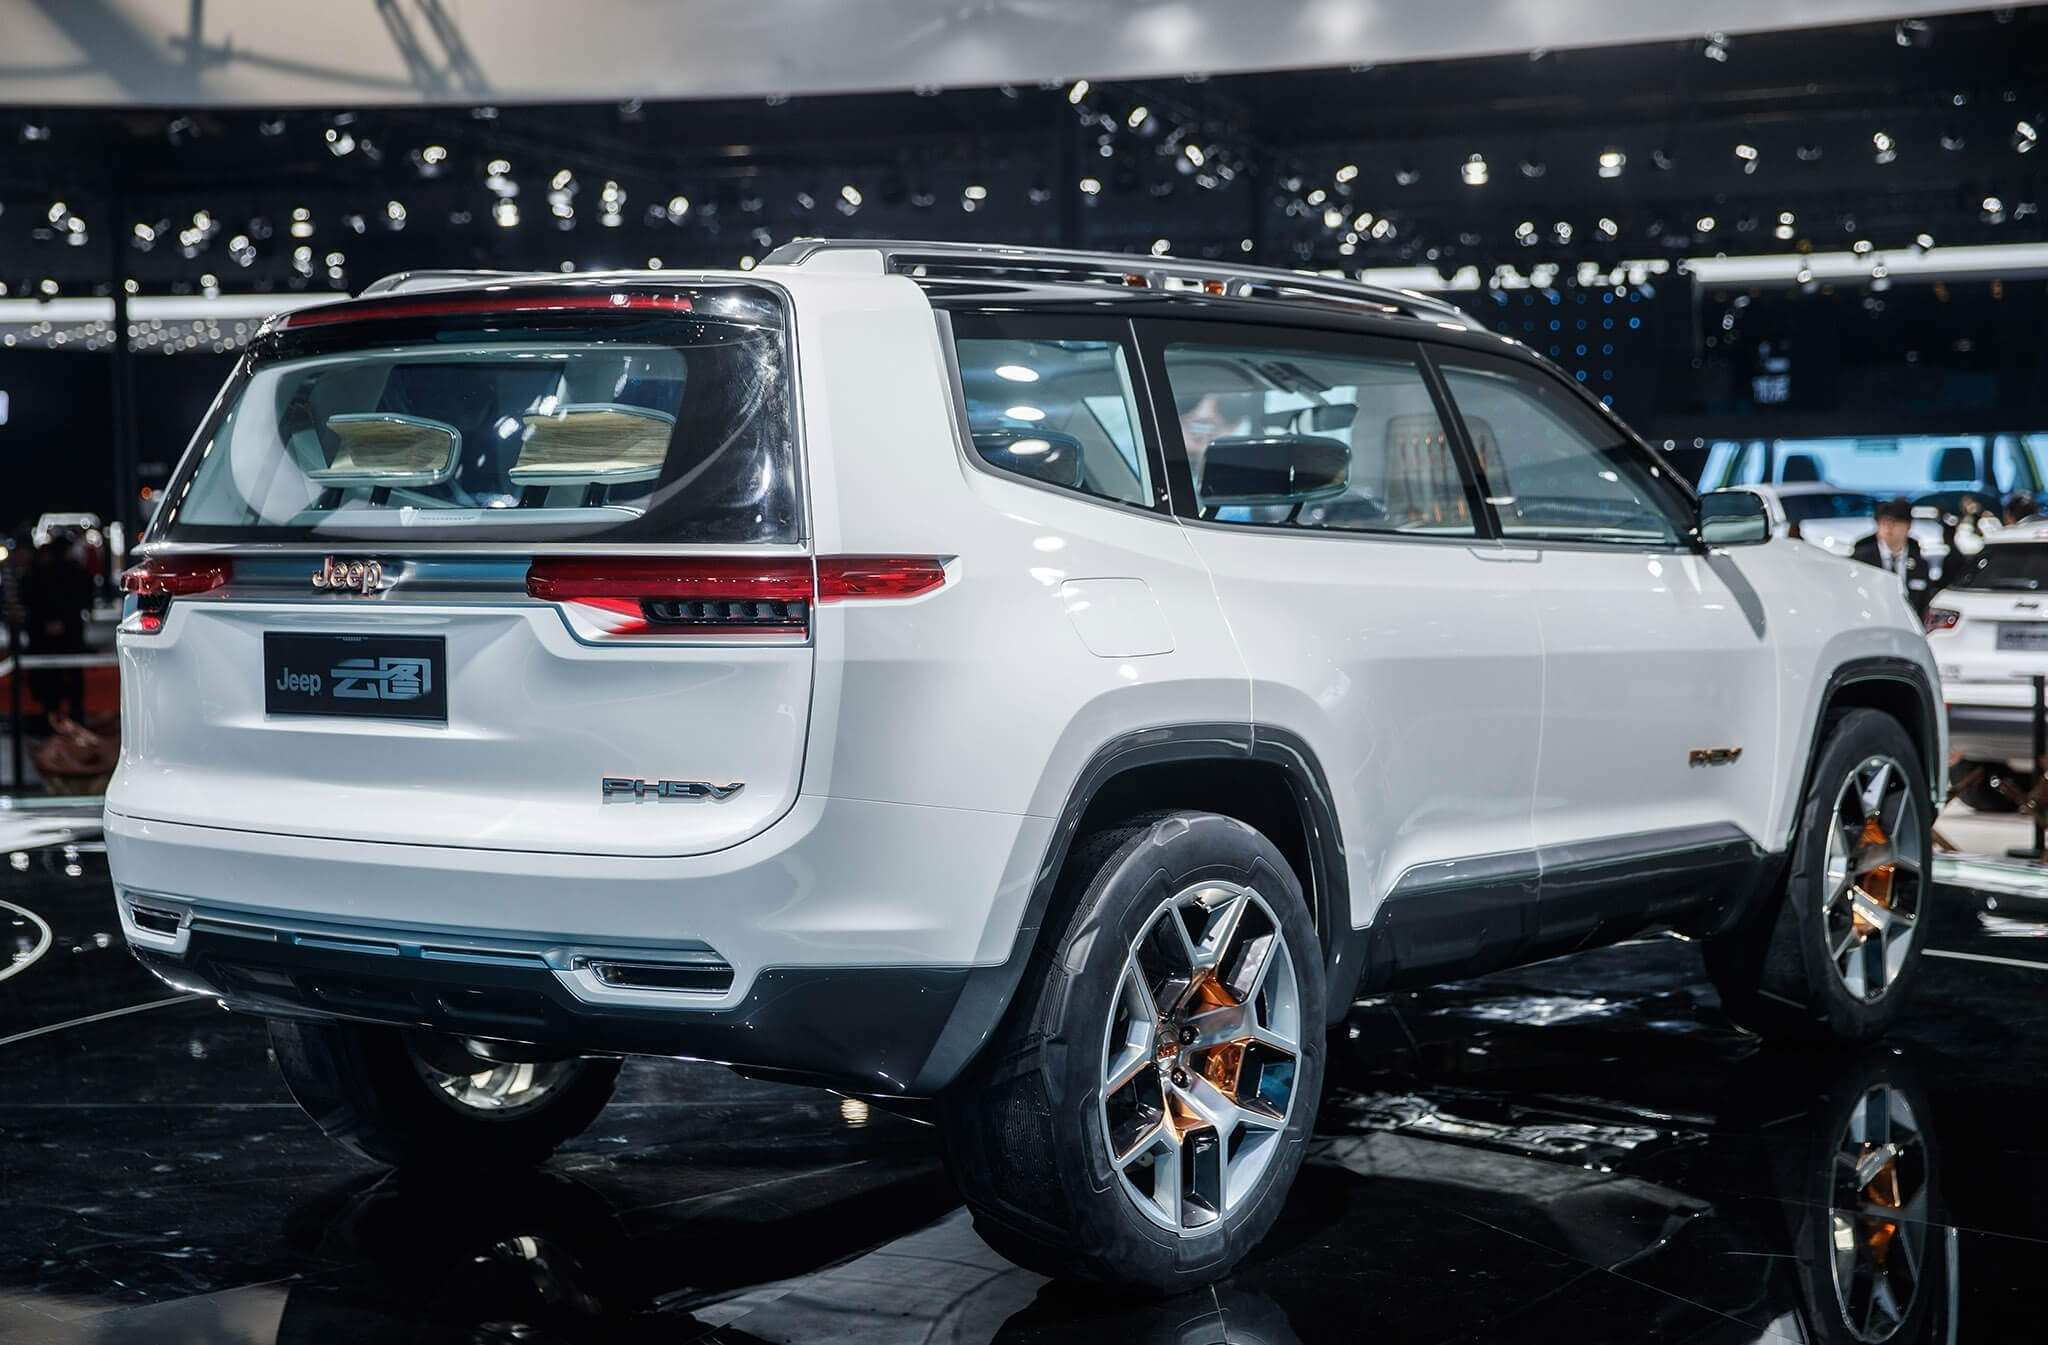 62 All New 2020 Jeep Cherokee Release Date Speed Test for 2020 Jeep Cherokee Release Date